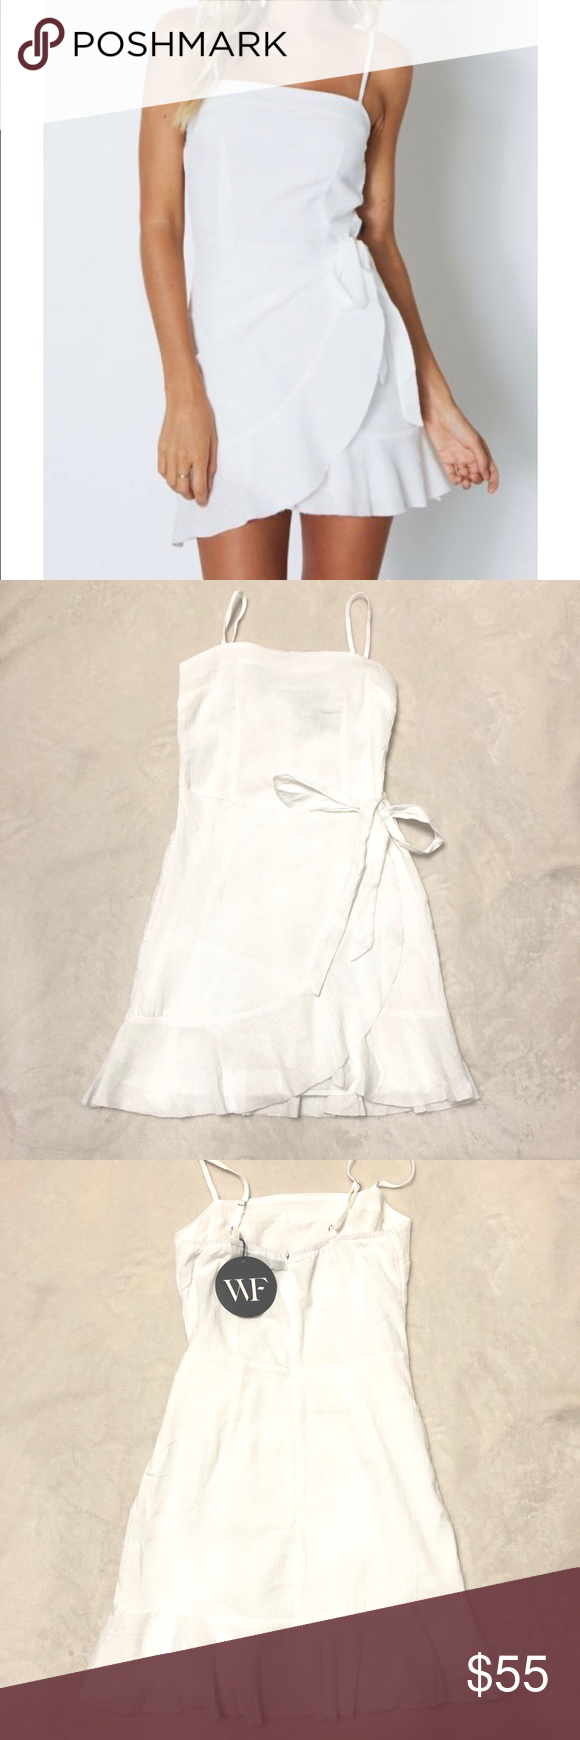 White Wrap Around White Fox Boutique Dress Never Been Worn And In Perfect Condition Whitefox Boutique Dresses White Wrap Dress Clothes Design Fashion [ 1740 x 580 Pixel ]